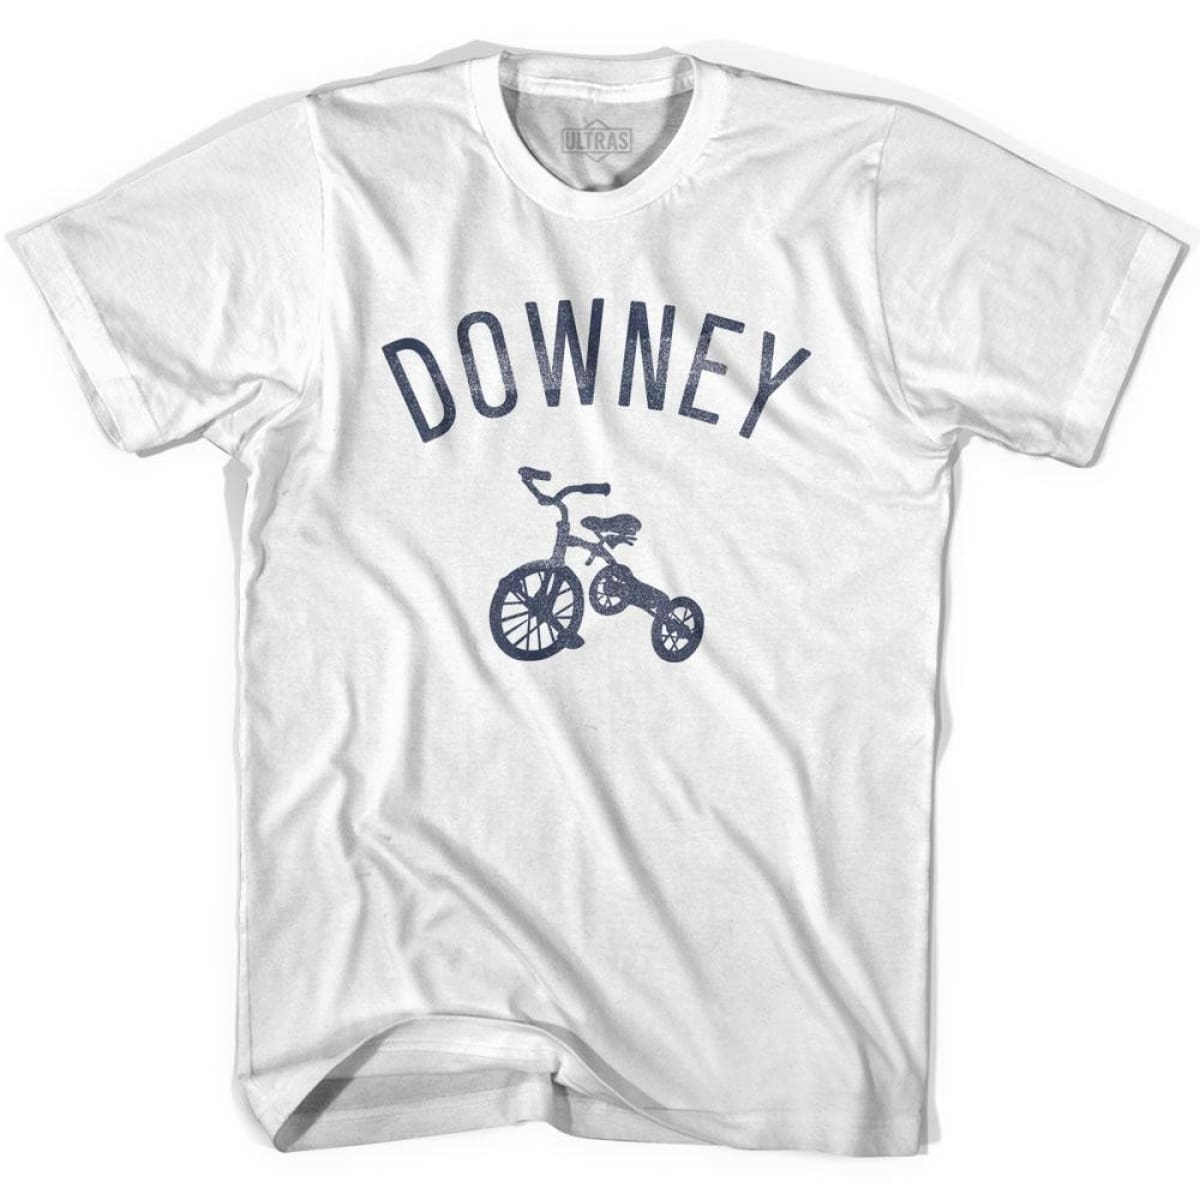 Downey City Tricycle Womens Cotton T-shirt - Tricycle City